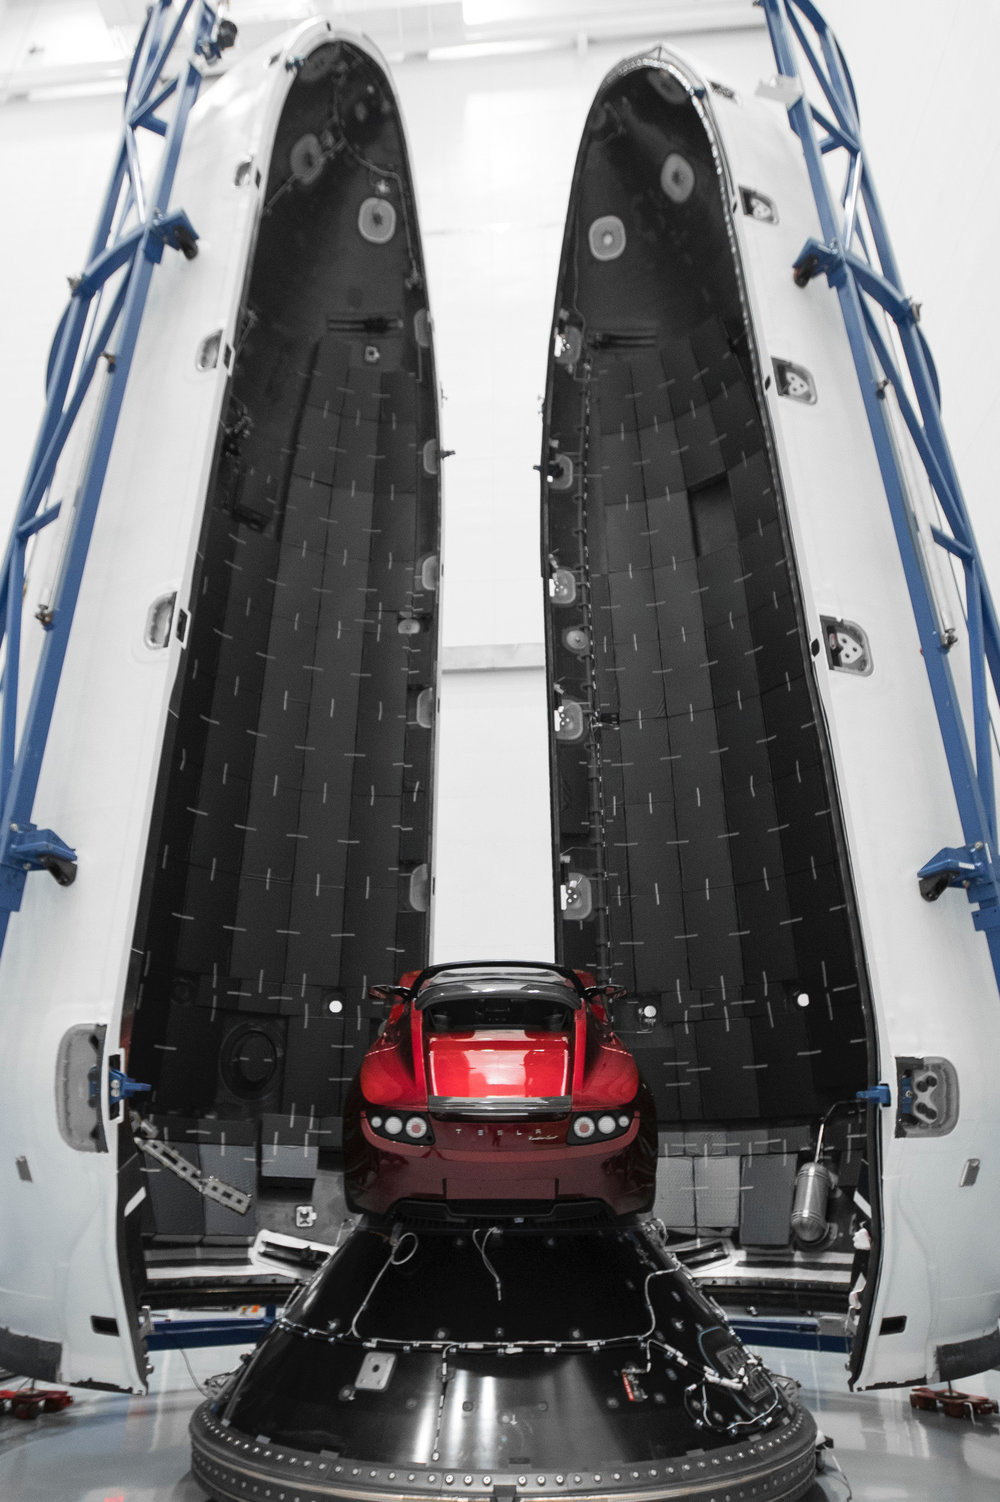 Elon Musk's Tesla Roadster, launched into orbit in the SpaceX Falcon Heavy rocket, February 2018